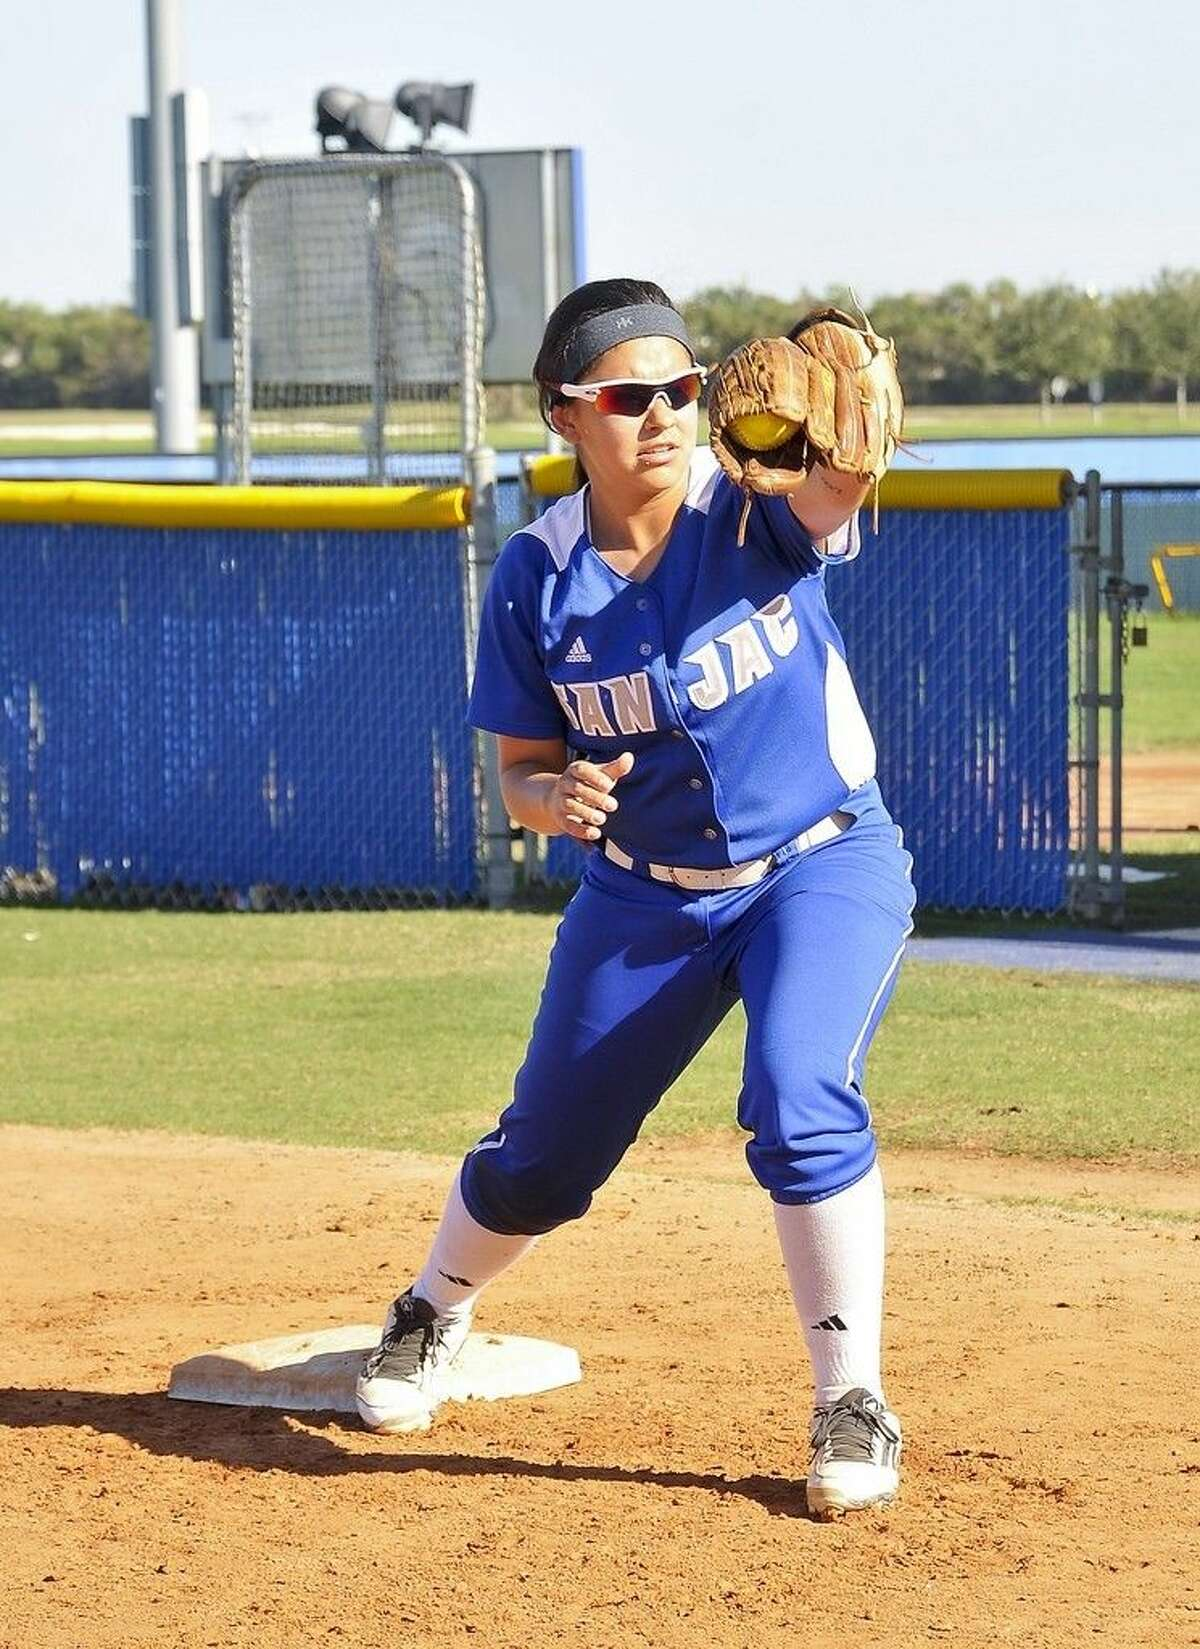 The San Jacinto College softball team will host its Breast Cancer Awareness game on Wednesday, April 13 at 4 p.m., against Alvin Community College. Pictured: JJ Cerda. Photo credit: Andrea Vasquez, San Jacinto College marketing, public relations, and government affairs department.